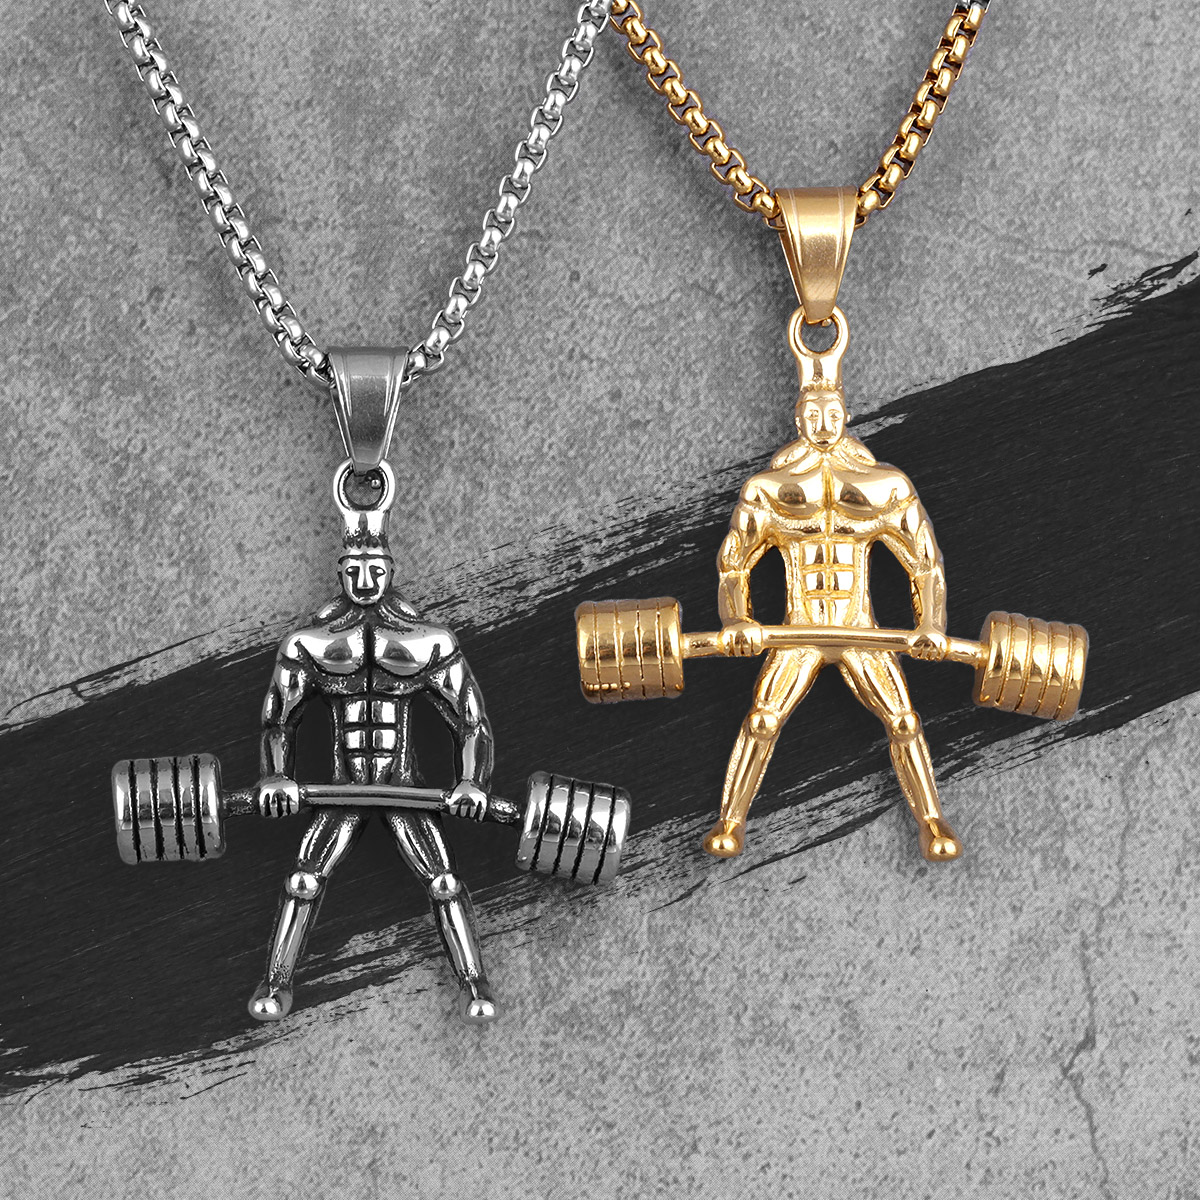 Weightlifting Fitness Bodybuilding Men Necklaces Pendants Chain for Boy Male Stainless Steel Jewelry Creativity Gift Wholesale